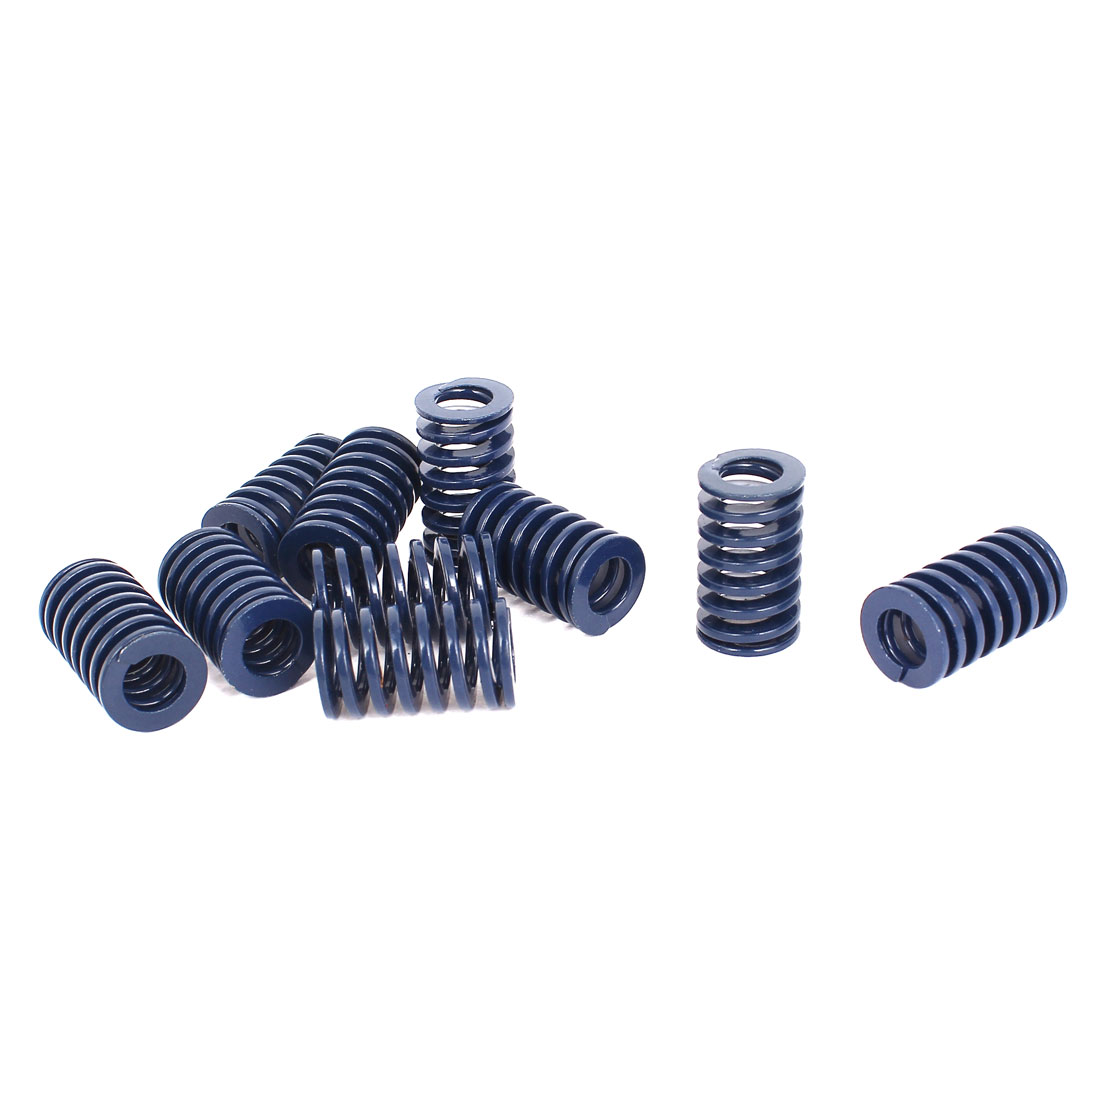 18mm OD 30mm Long Light Load Stamping Compression Mold Die Spring Blue 10pcs